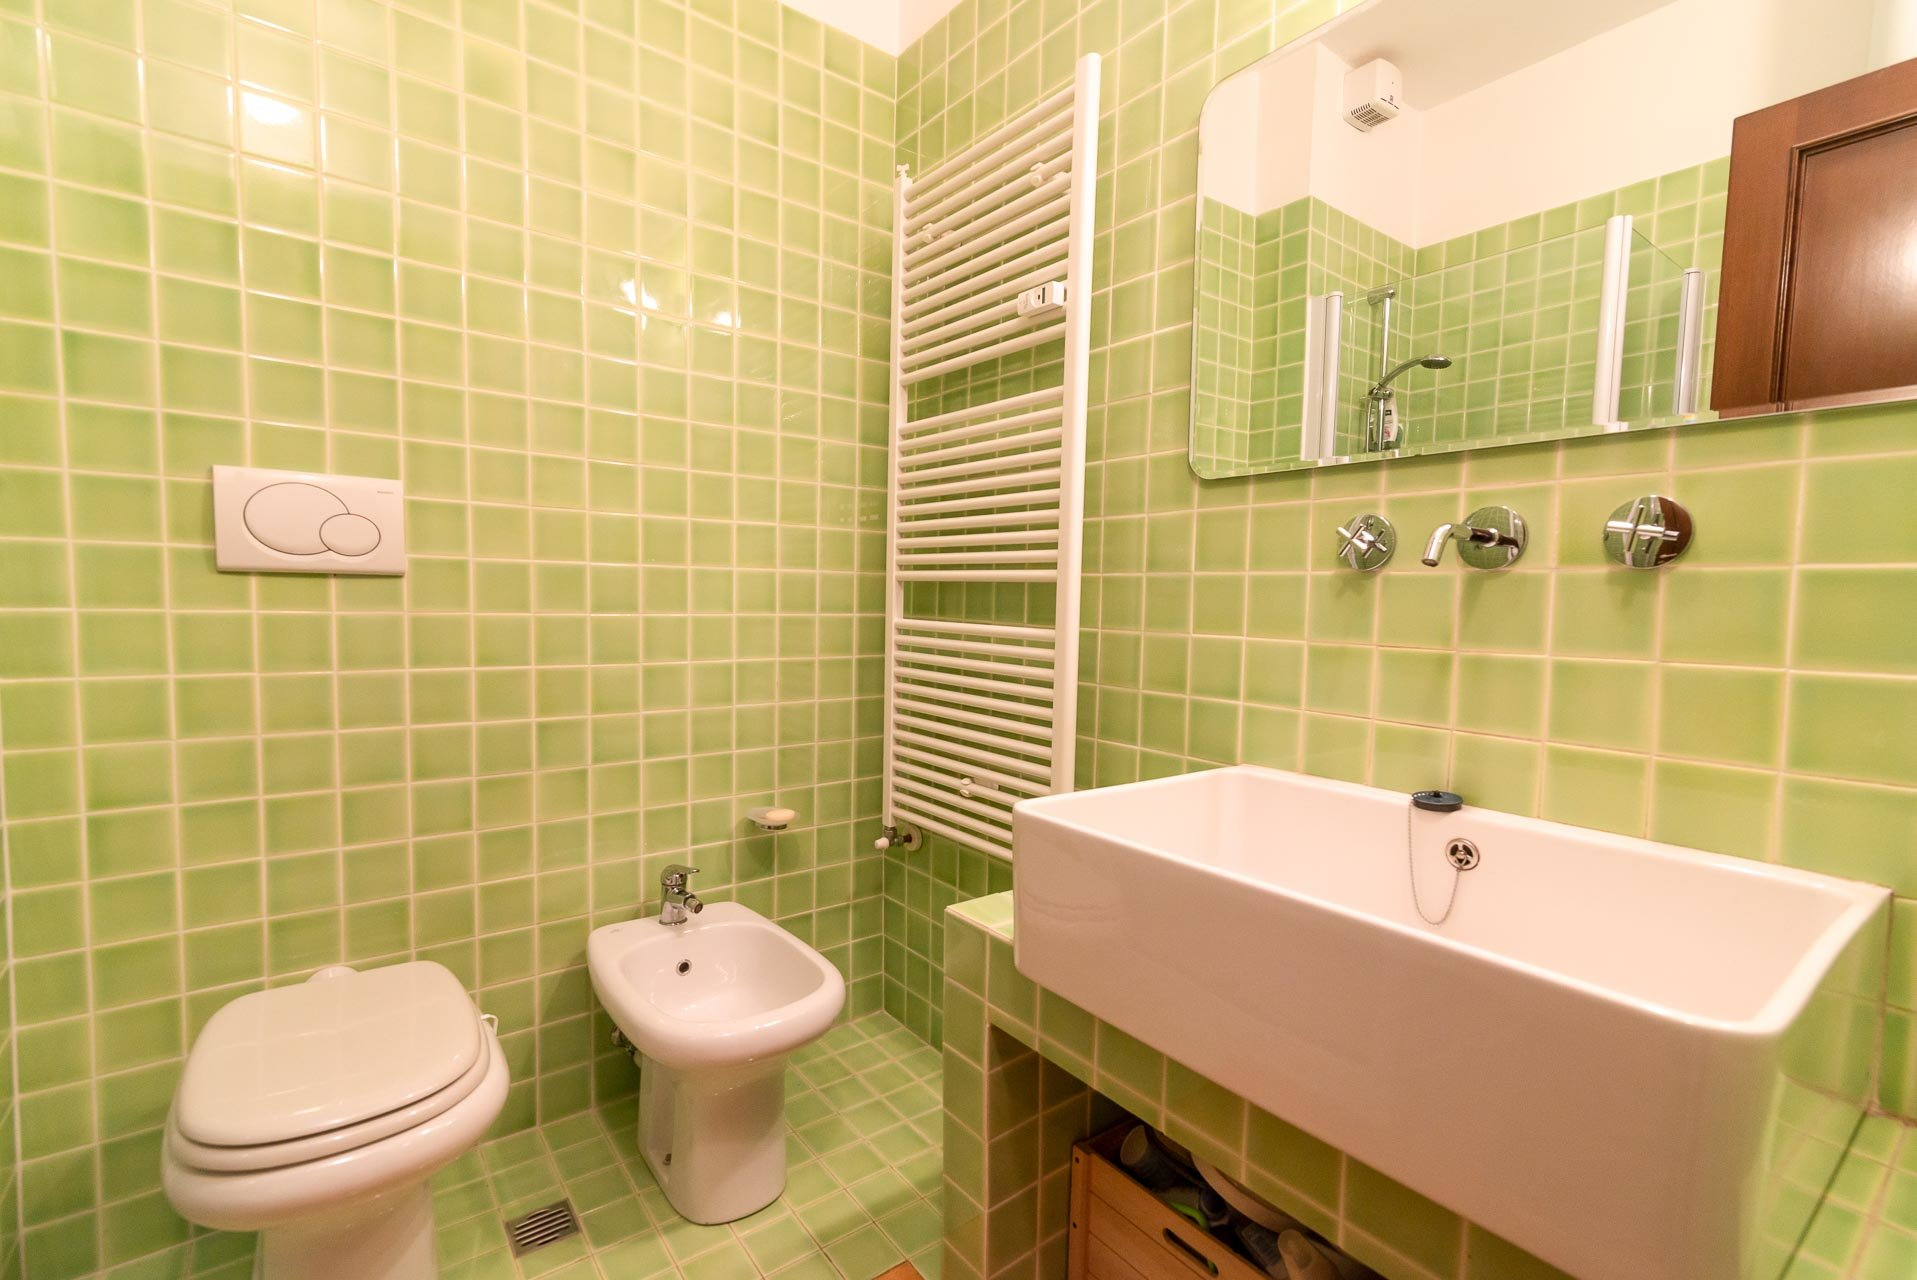 Apartment for sale in Stresa in a residence - bathroom